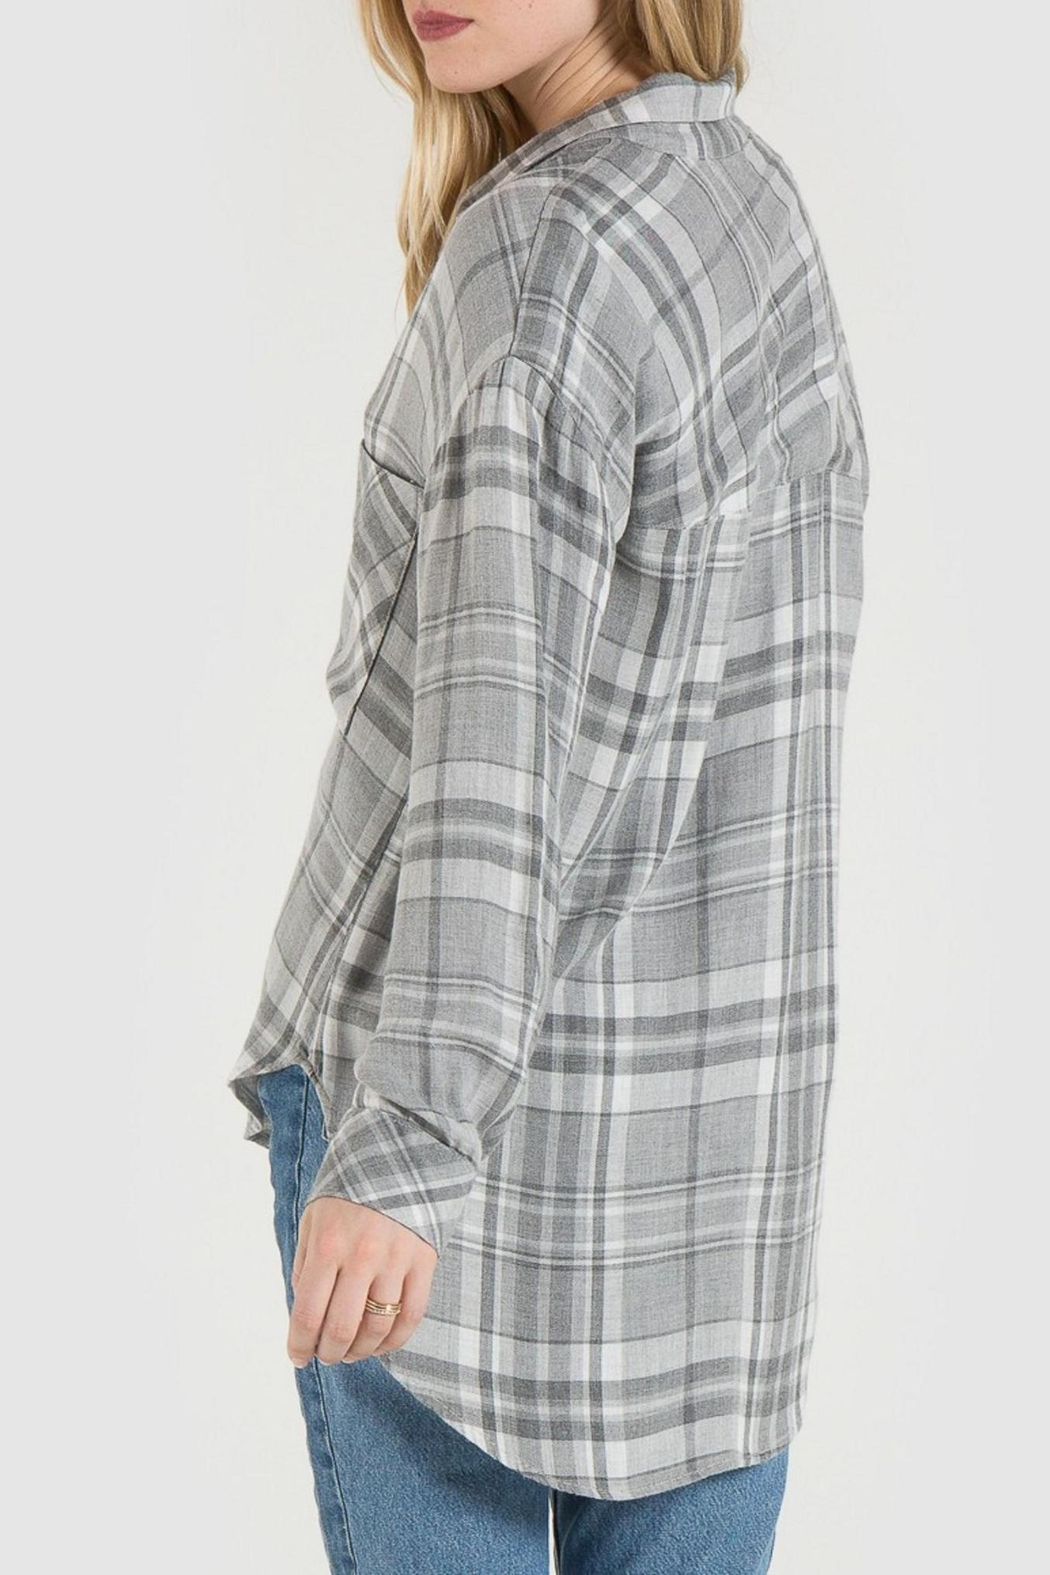 Bella Dahl Grey Plaid Shirt - Front Full Image